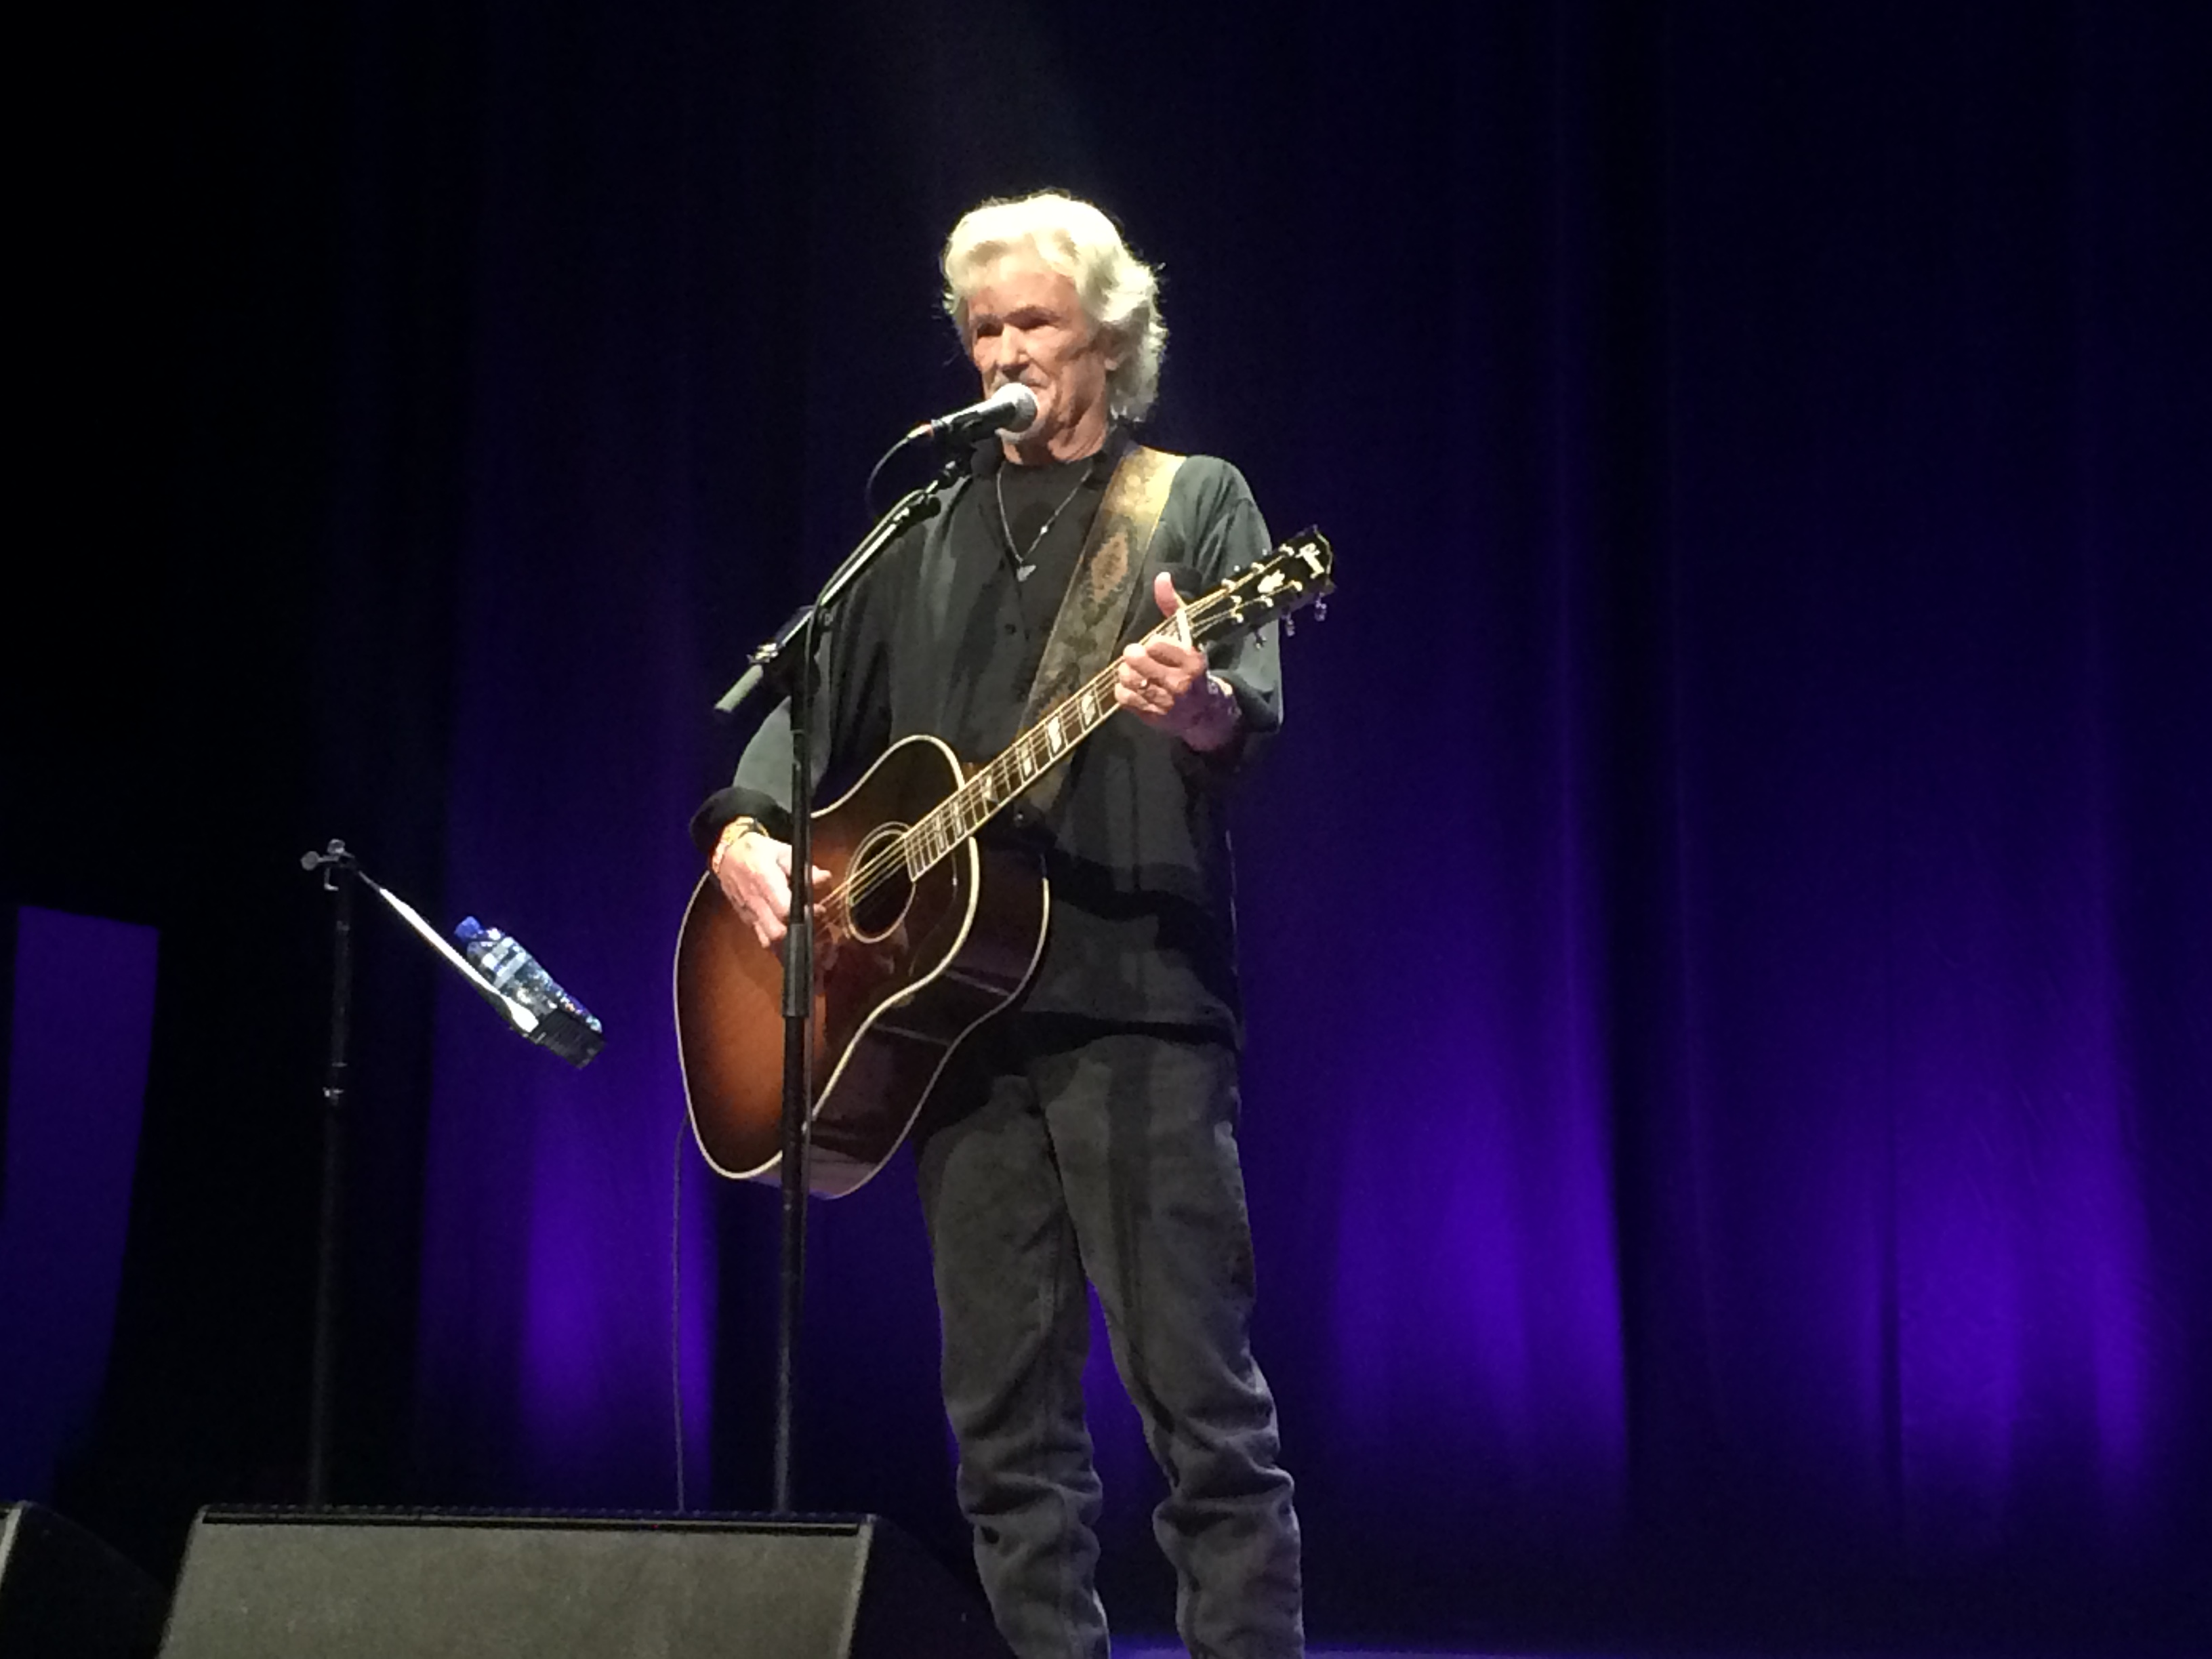 Concertreview: Kris Kristofferson, 'I'm so glad that I was close to you!'